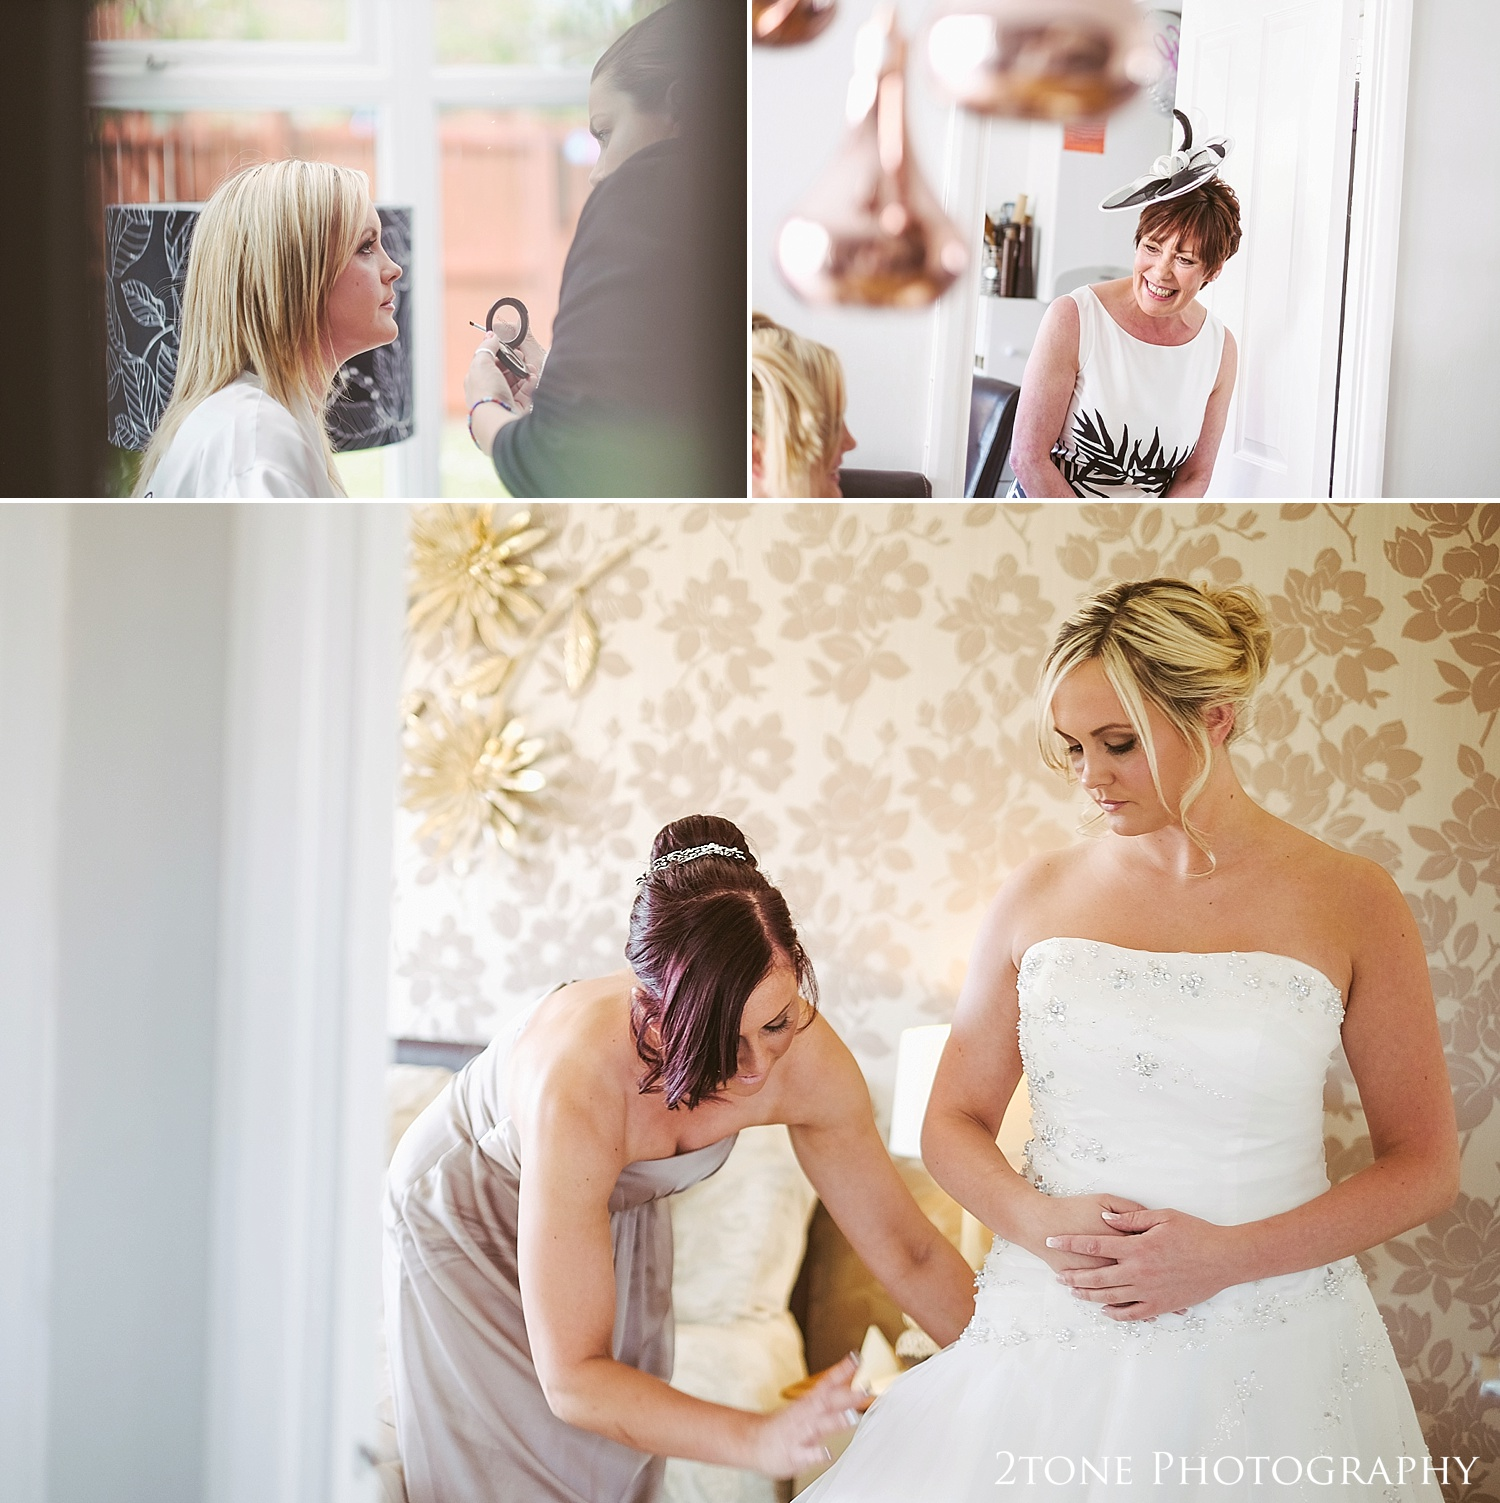 Bridal preparations by by www.2tonephotography.co.uk